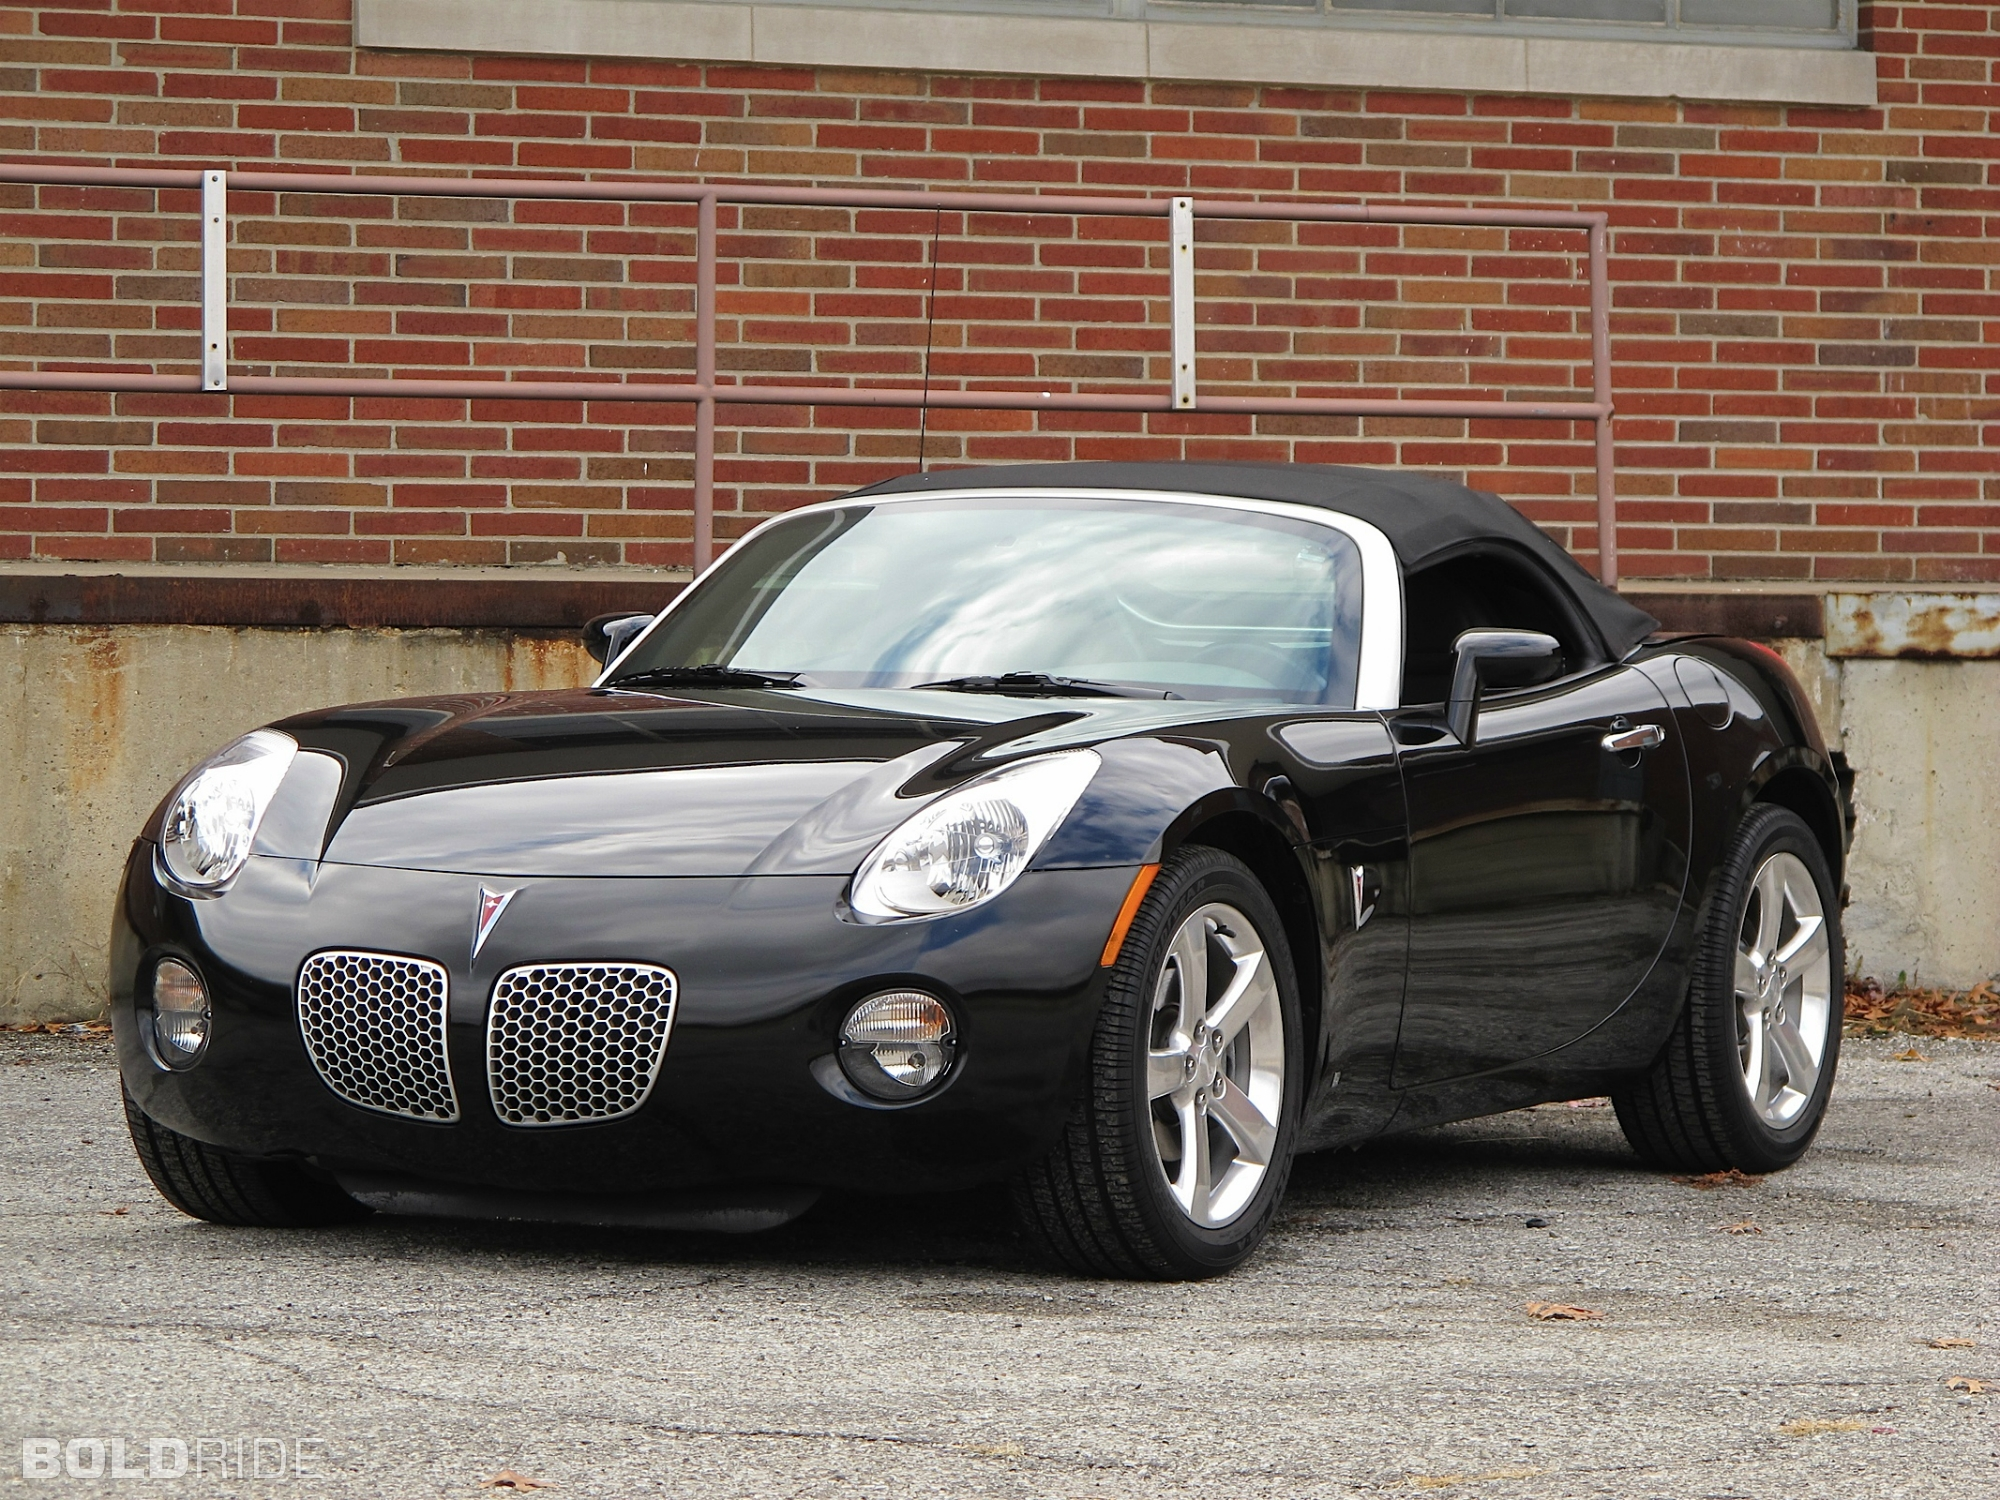 Pontiac Solstice Roadster Picture 15 Reviews News Specs Buy Car